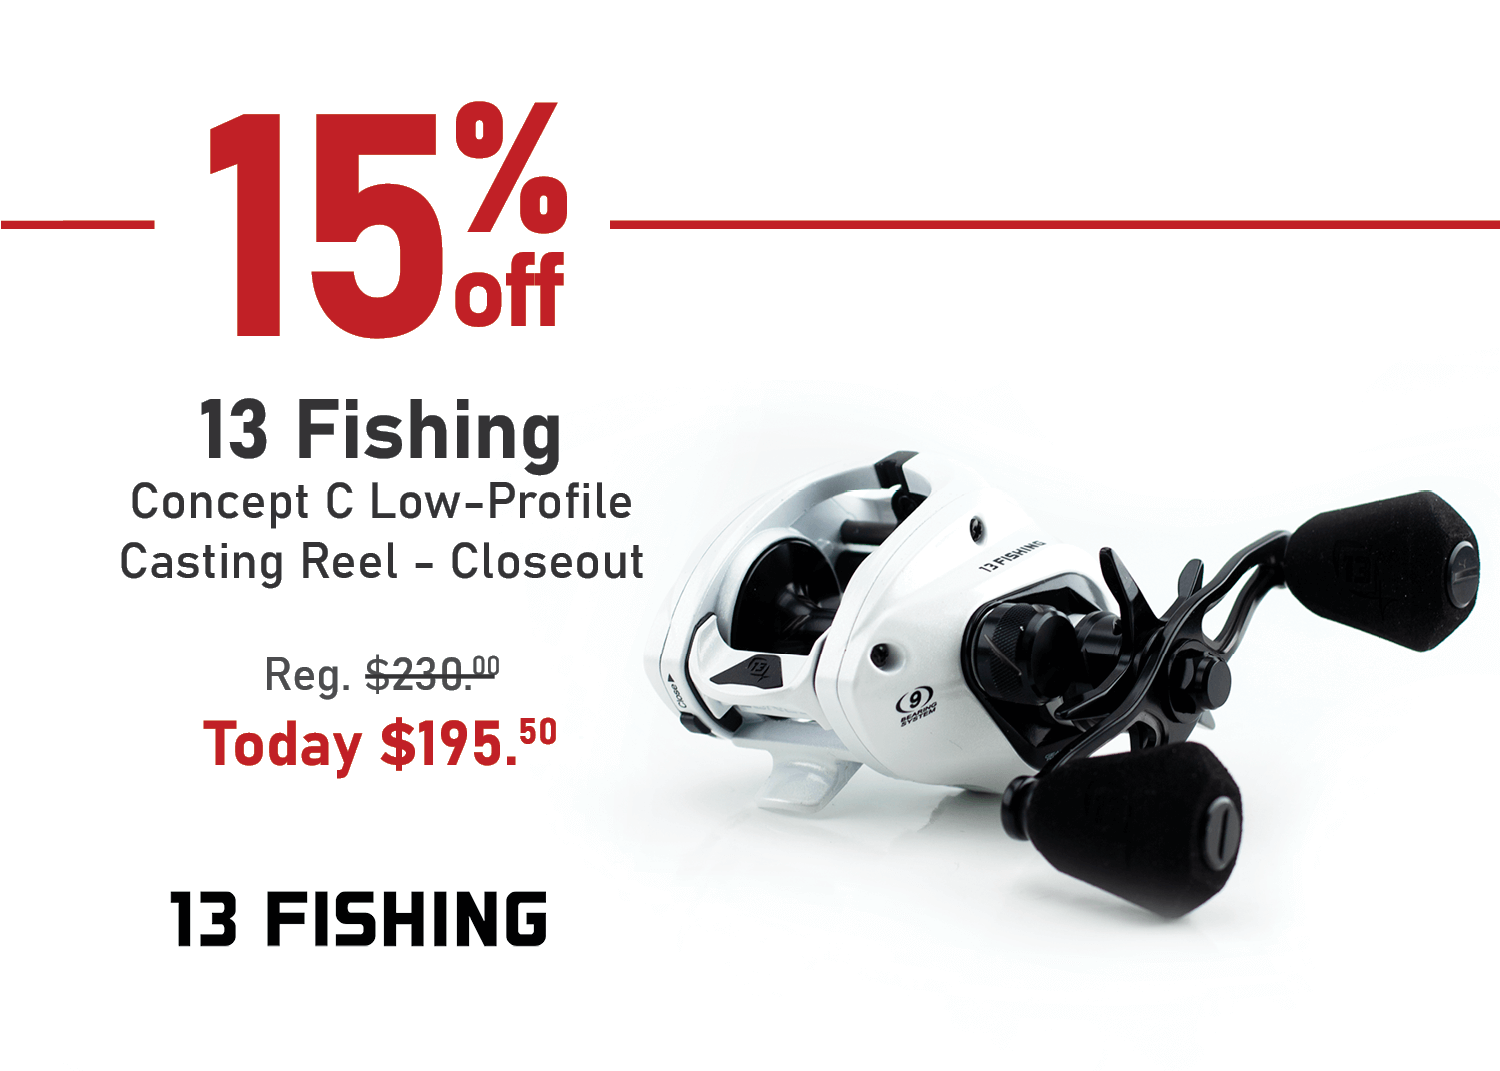 Save 15% on the 13 Fishing Concept C Low-Profile Casting Reel - Closeout